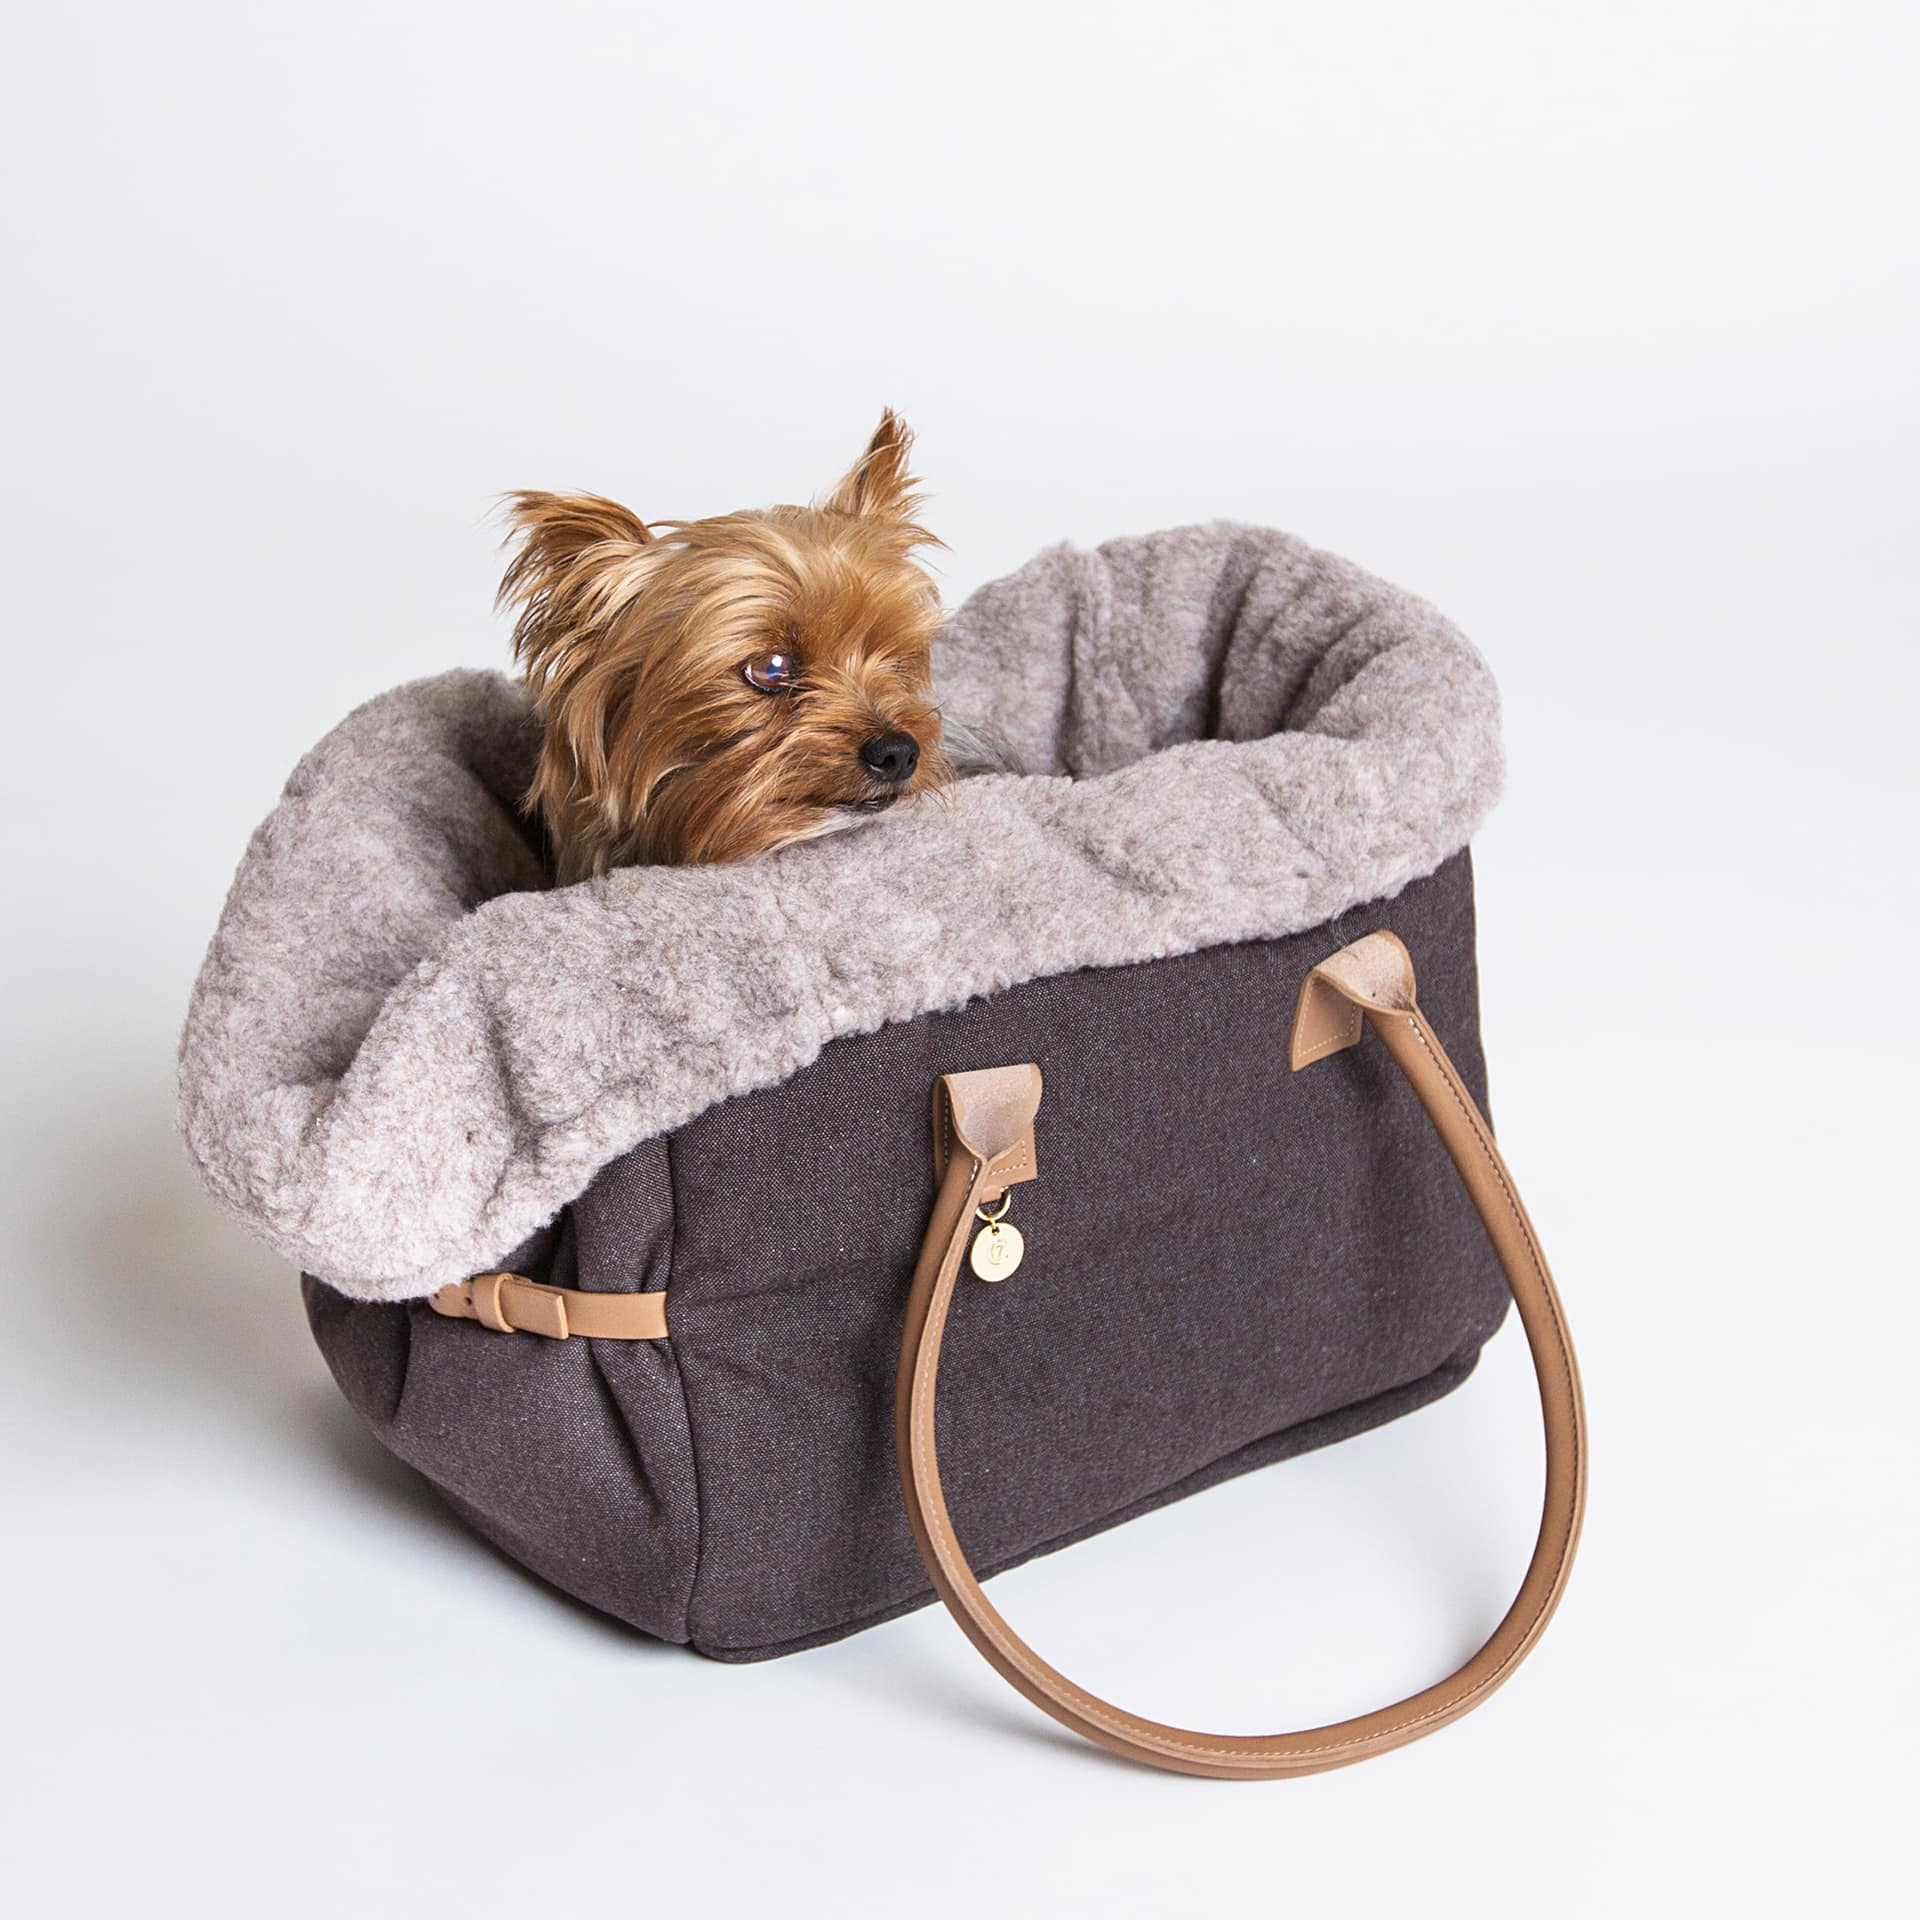 cloud 7 dog carrier with tan leather handles